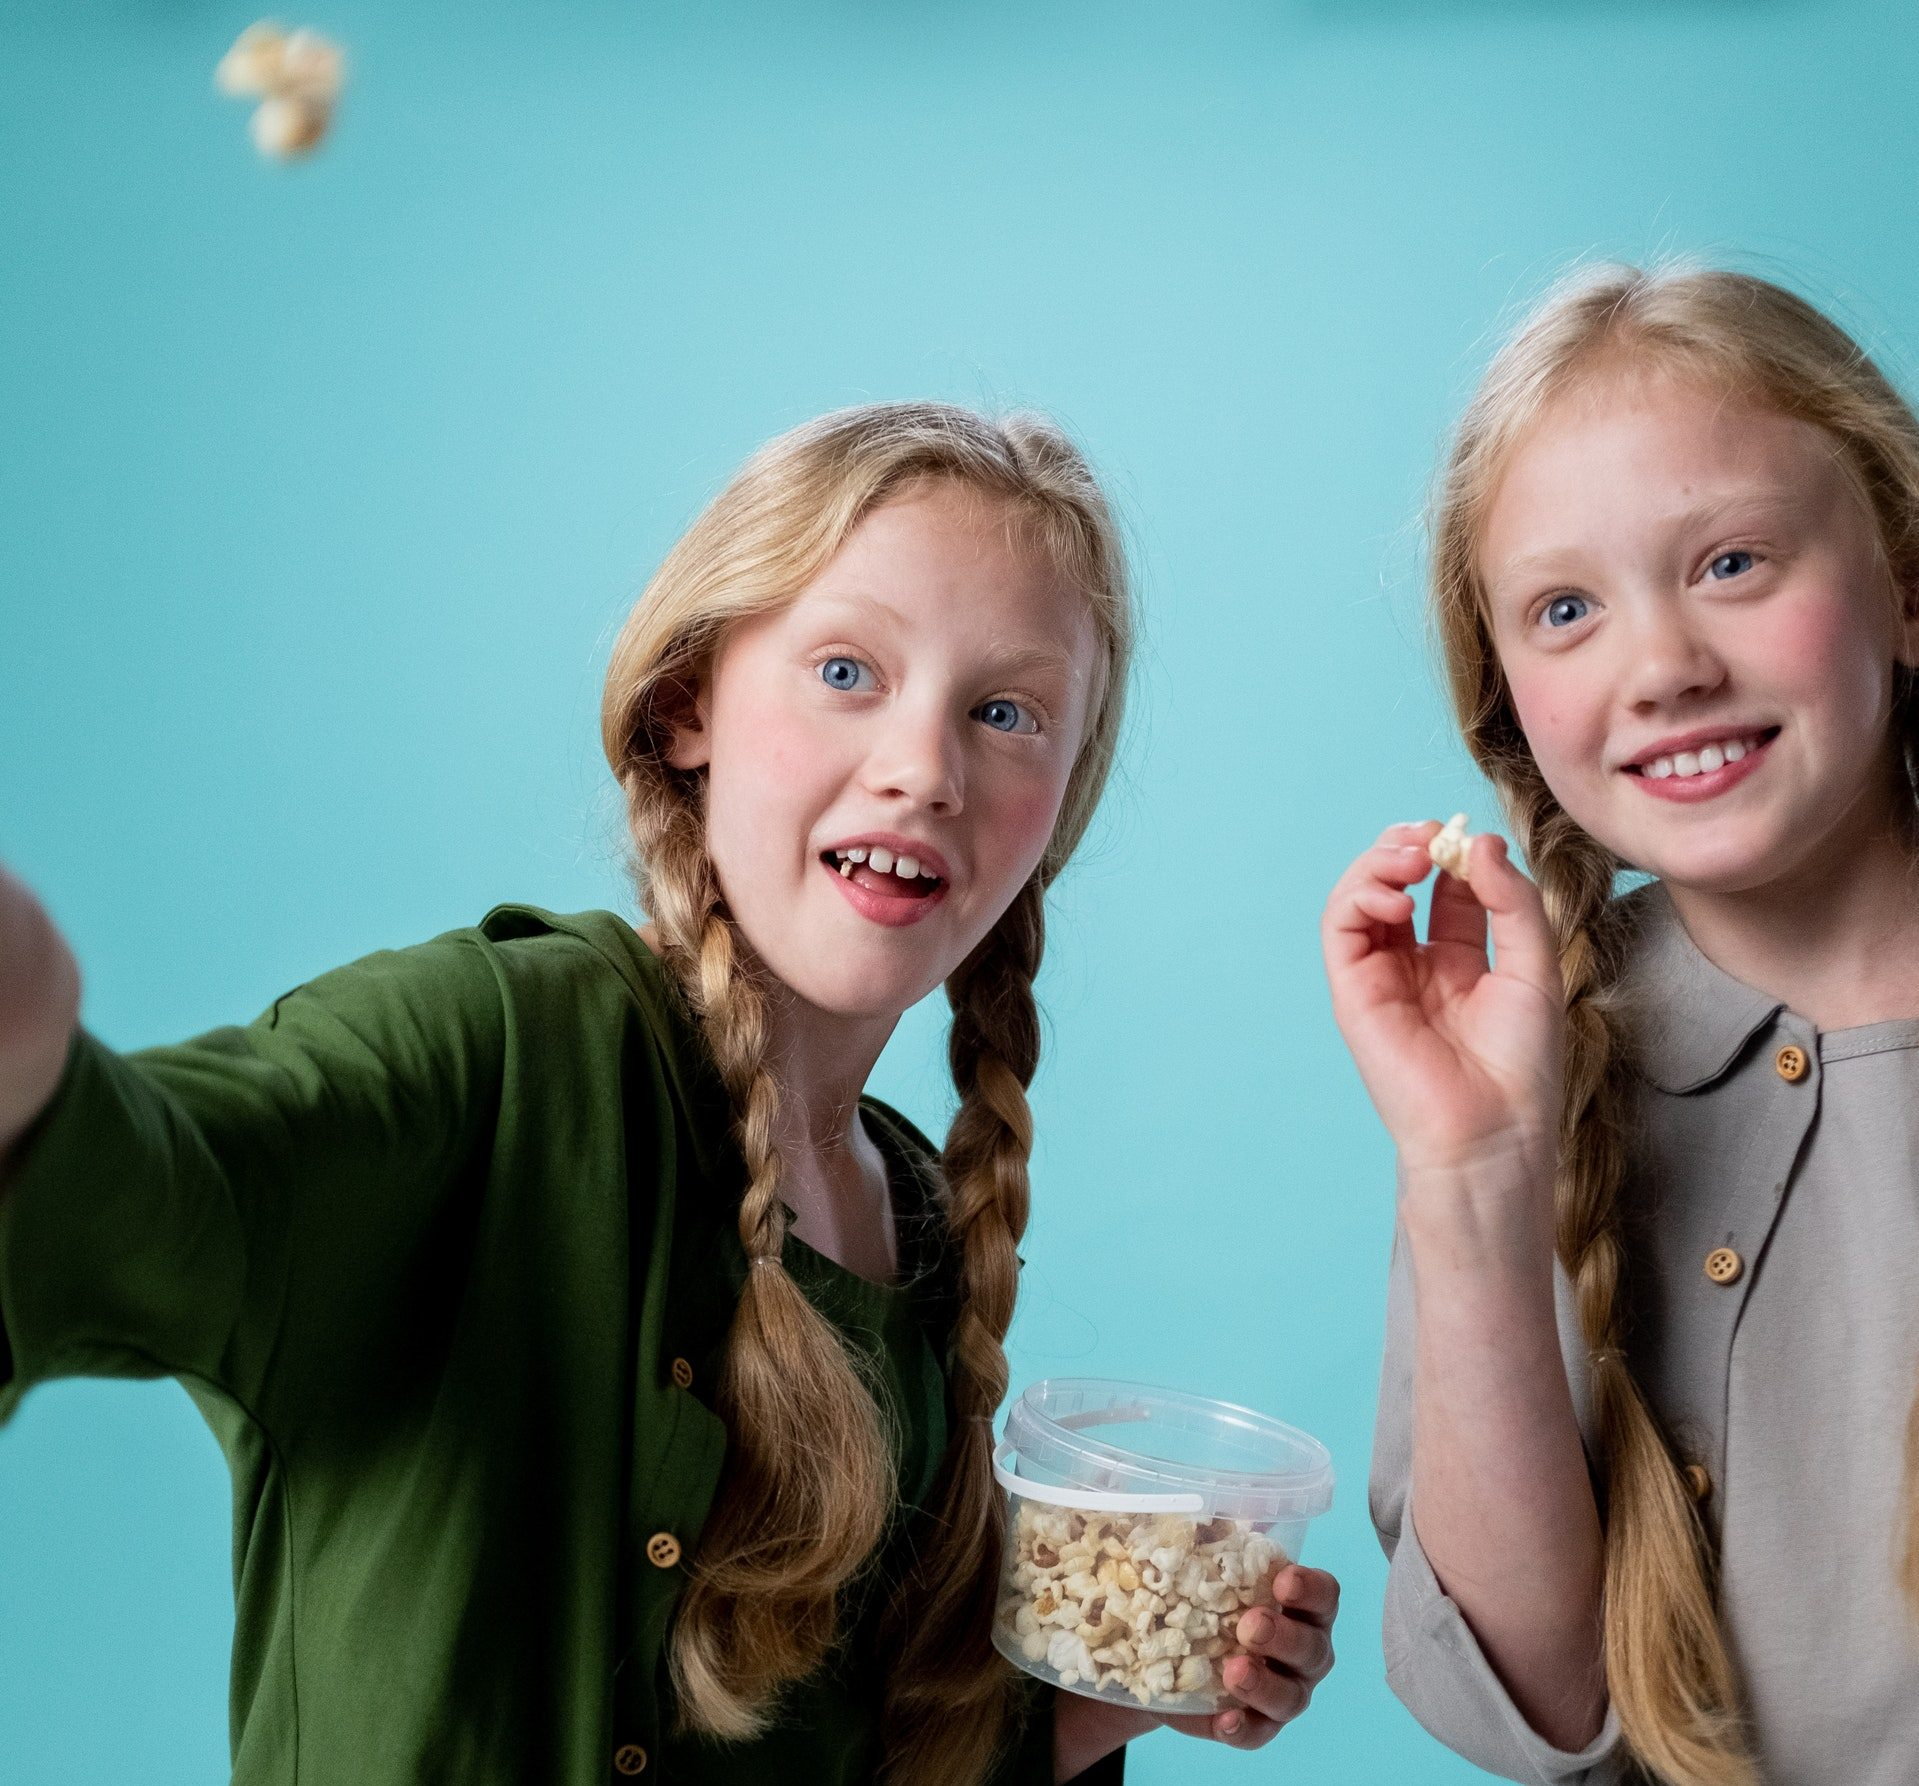 Children playing with popcorn